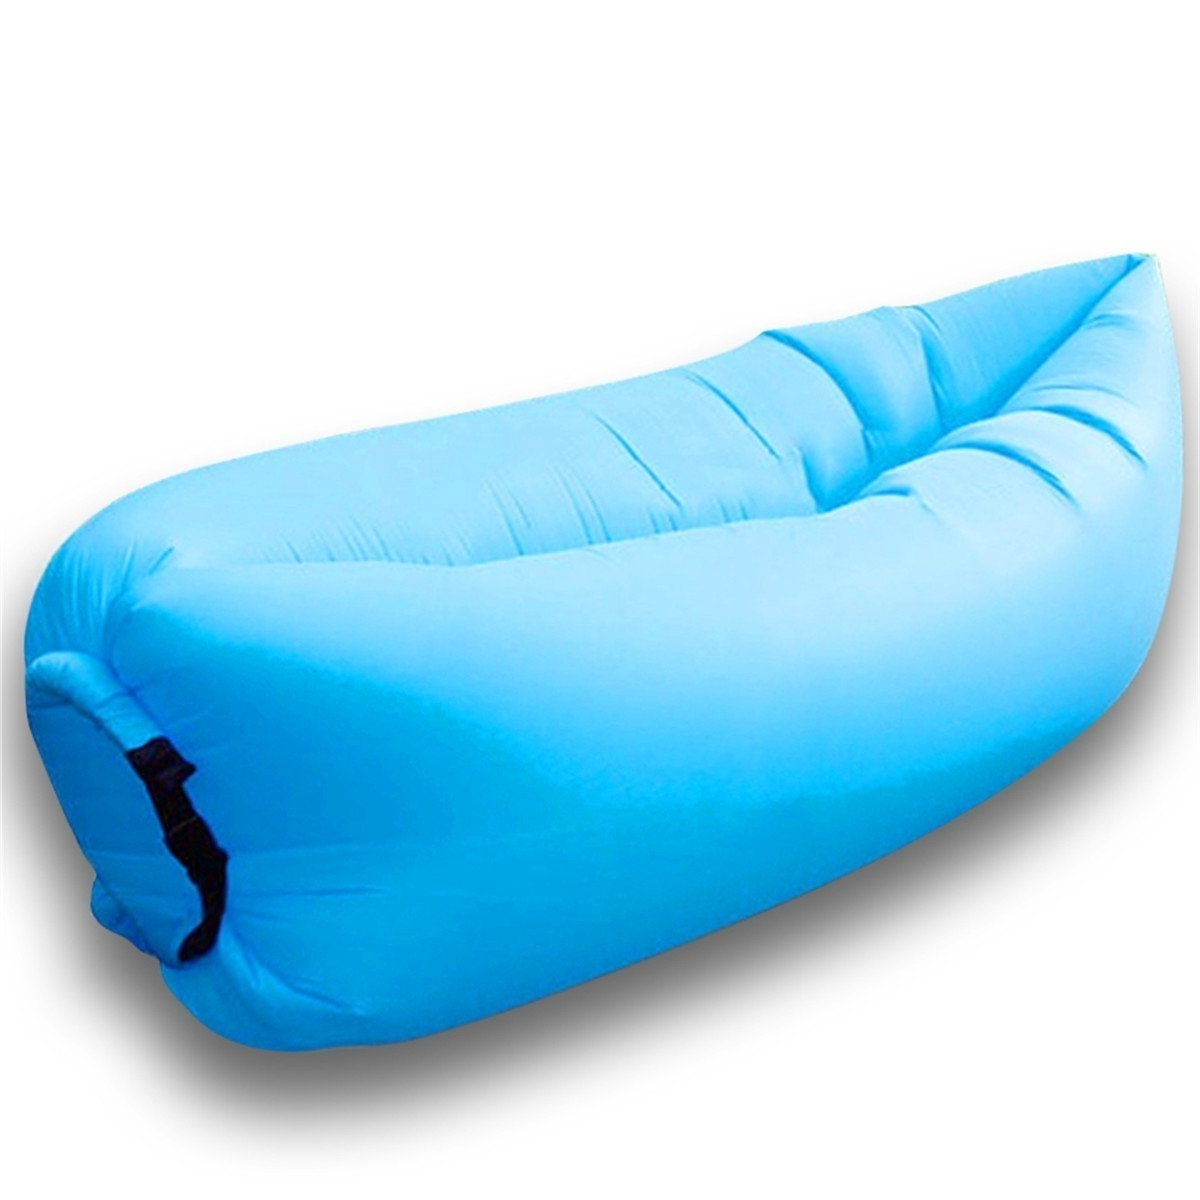 Inflatable Sofas And Chairs Throughout Trendy Inflatable Sofa Chair 56 With Inflatable Sofa Chair (View 9 of 20)